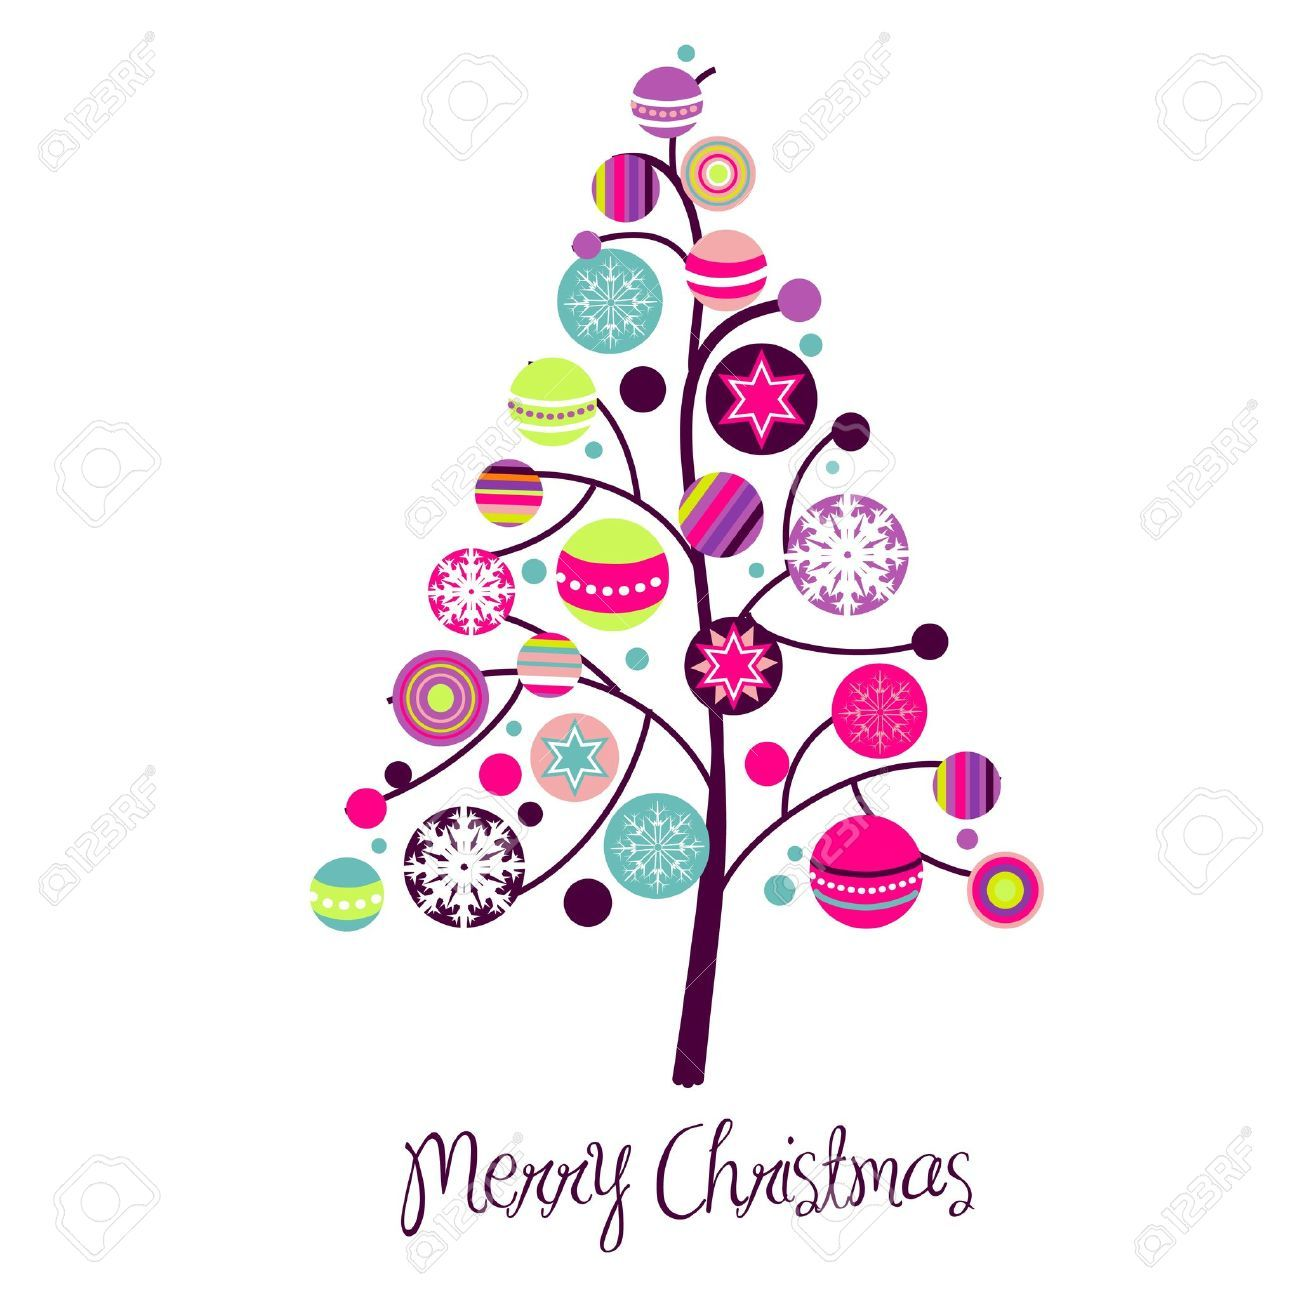 10456649 Abstract Christmas Tree With Cute And Colorful Design Elements Stock Vector Jp Whimsical Christmas Art Christmas Tree Art Contemporary Christmas Cards